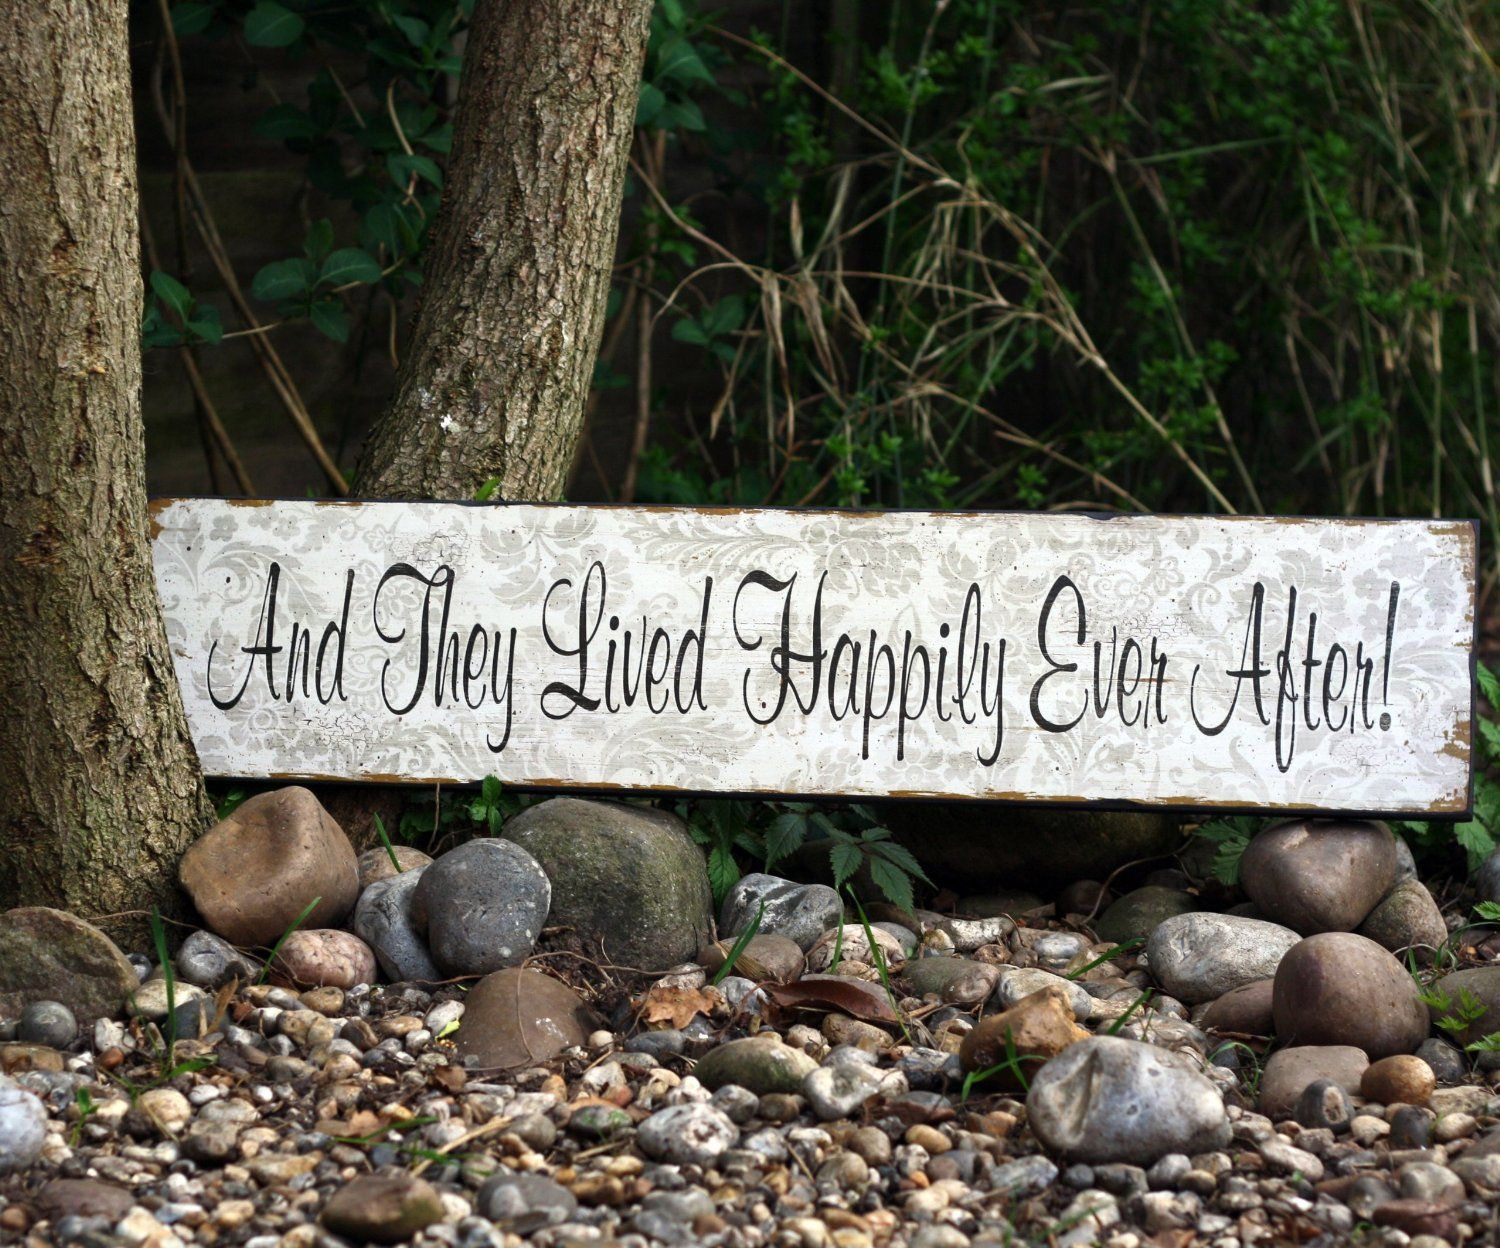 I Ve Just Found Hily Ever After Wedding Sign Large Vintage Style Wooden Reading And They Lived